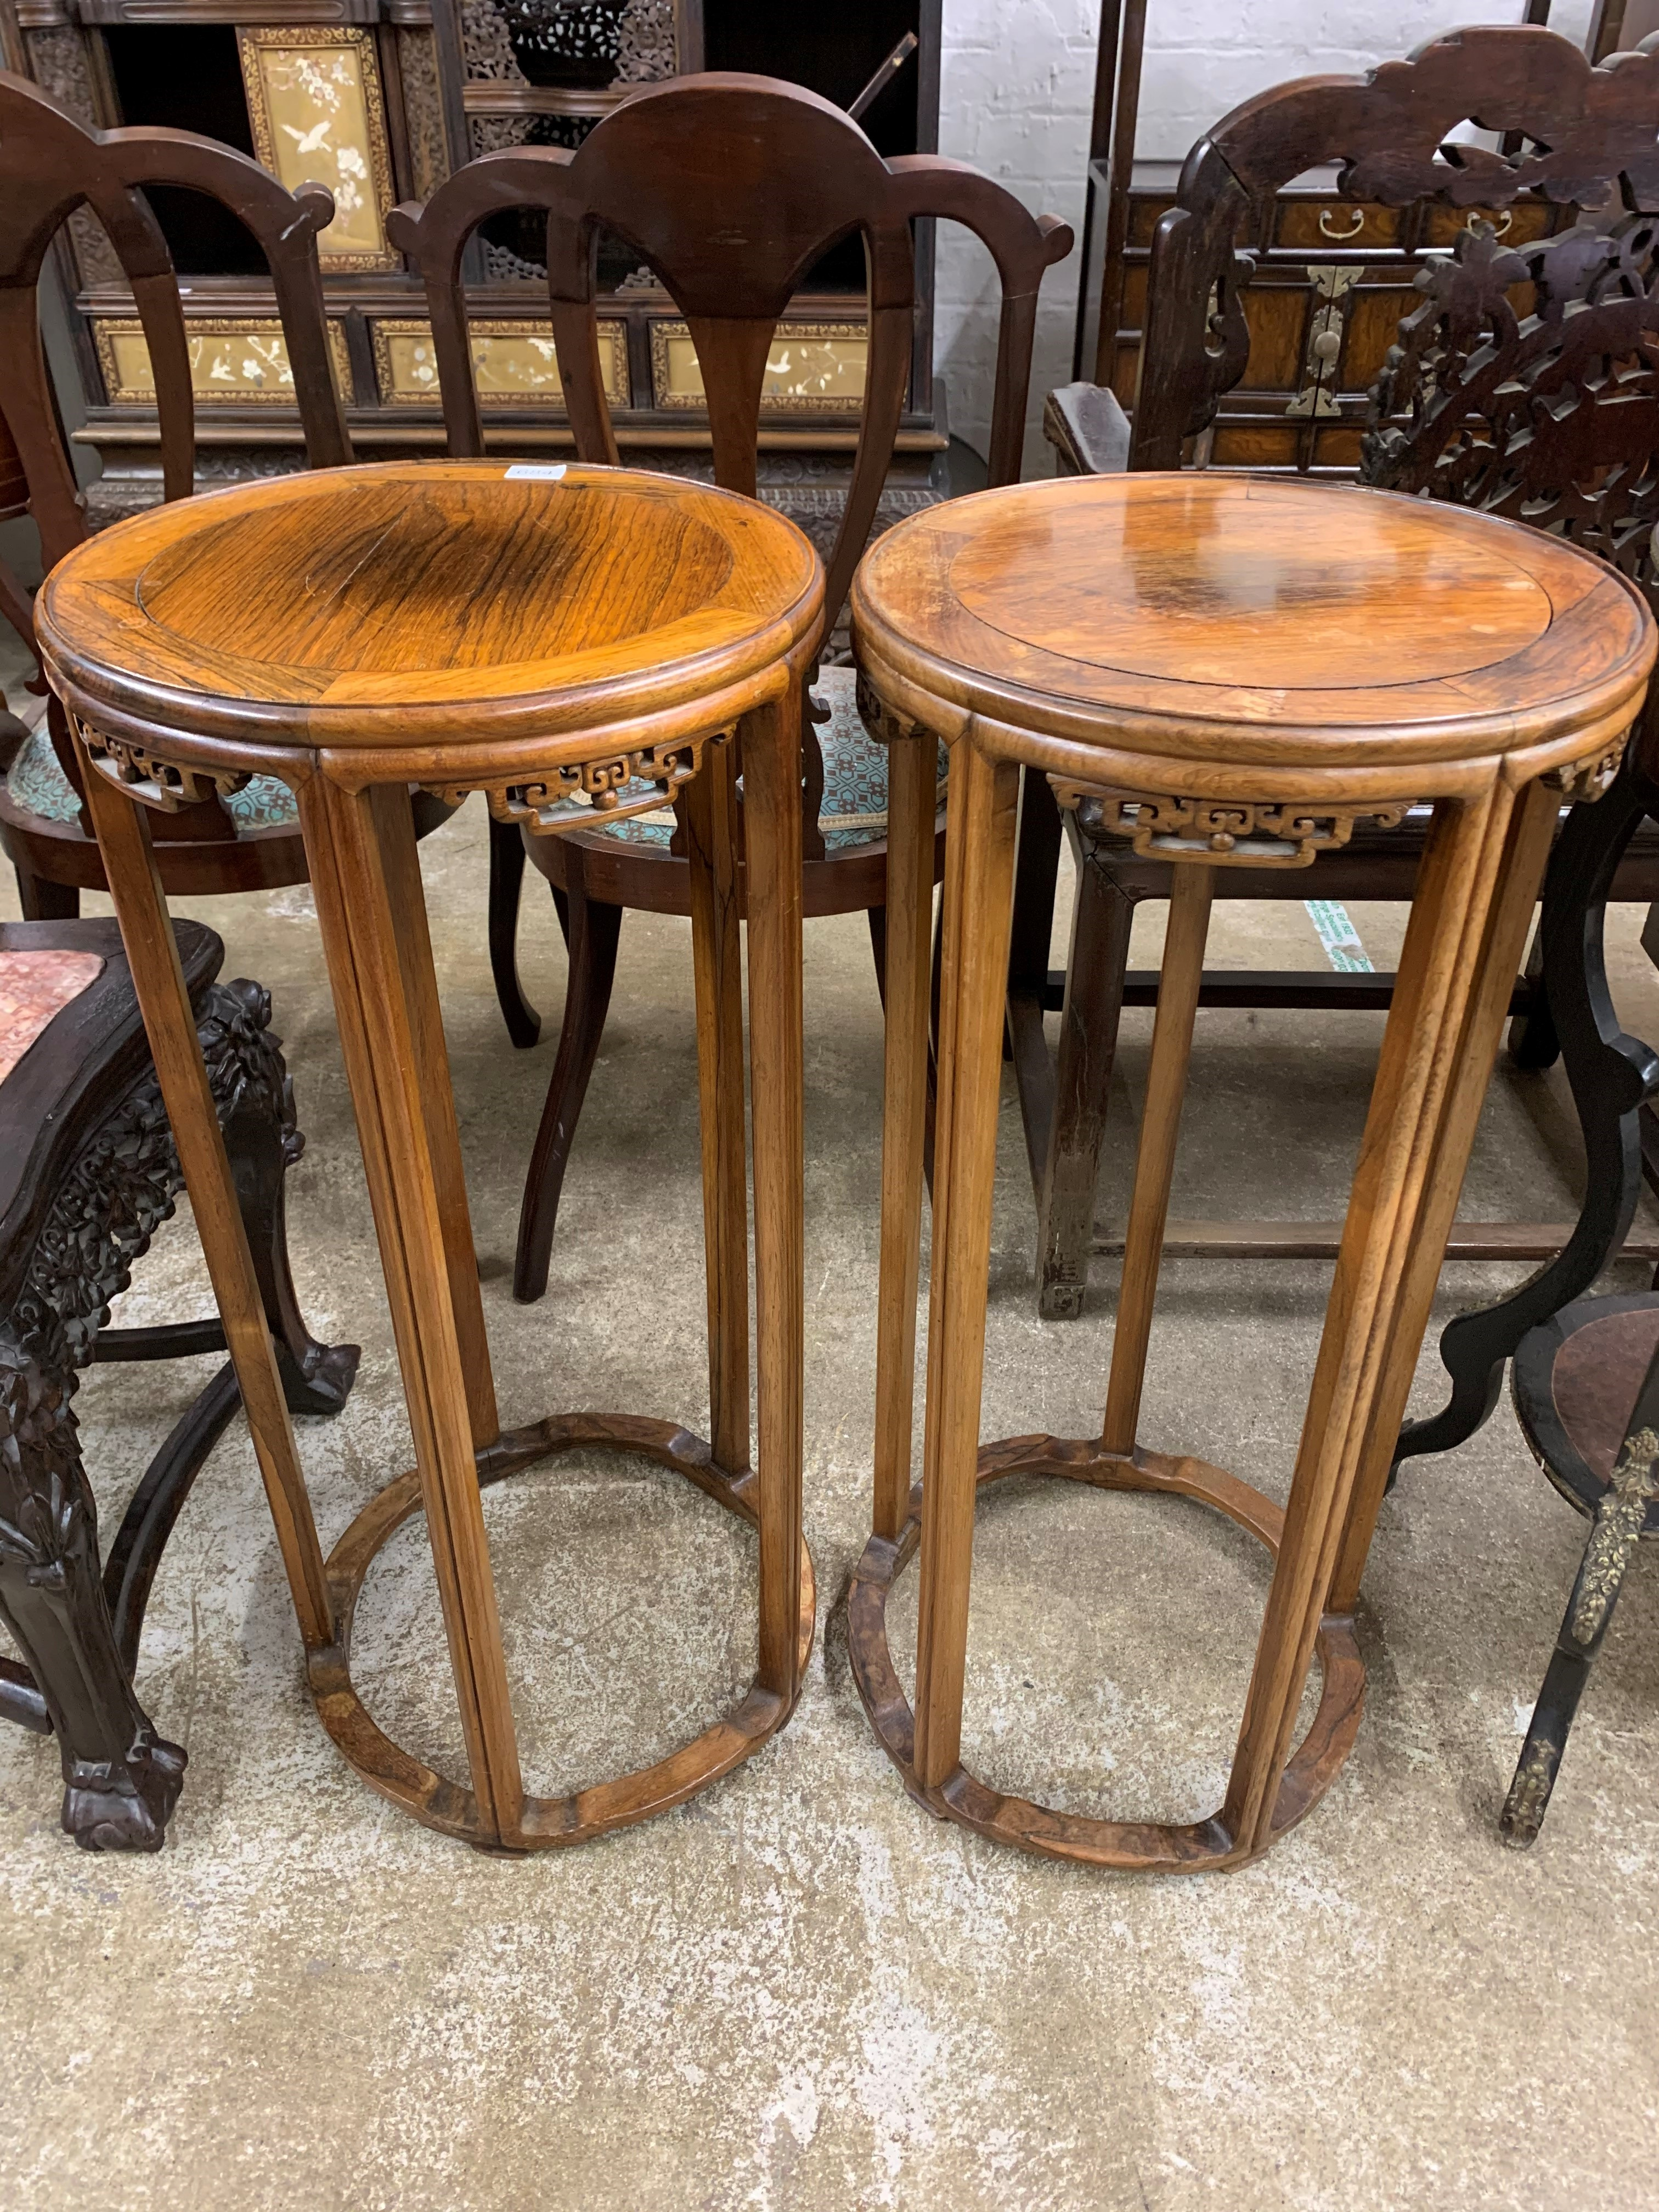 Pair Chinese hardwood jardinière stands, circular tops supported on five legs united by base - Image 6 of 8